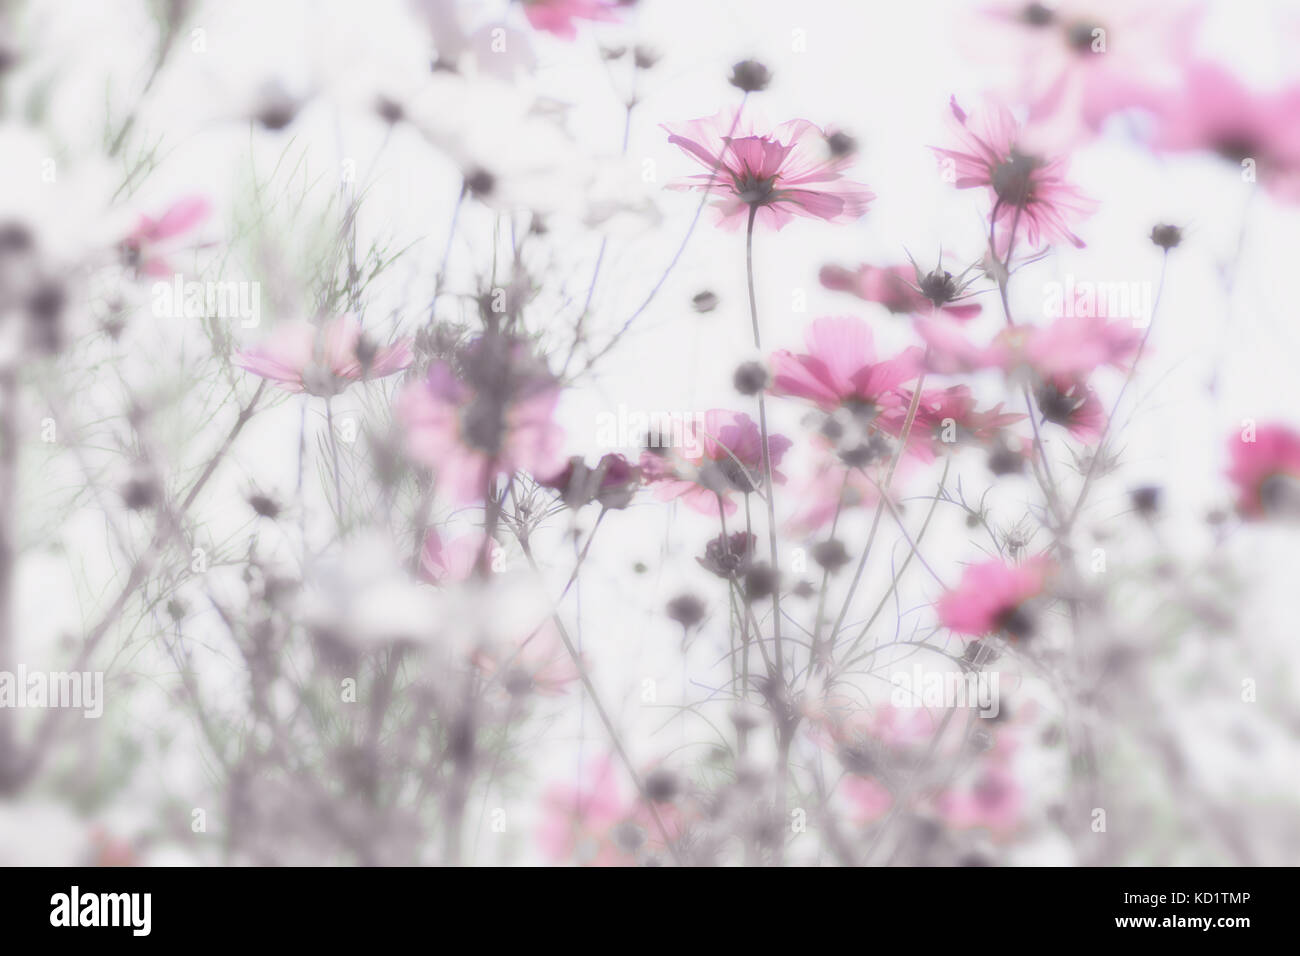 Pink Flowers With Soft And Blurry White Background Dreamy Effect